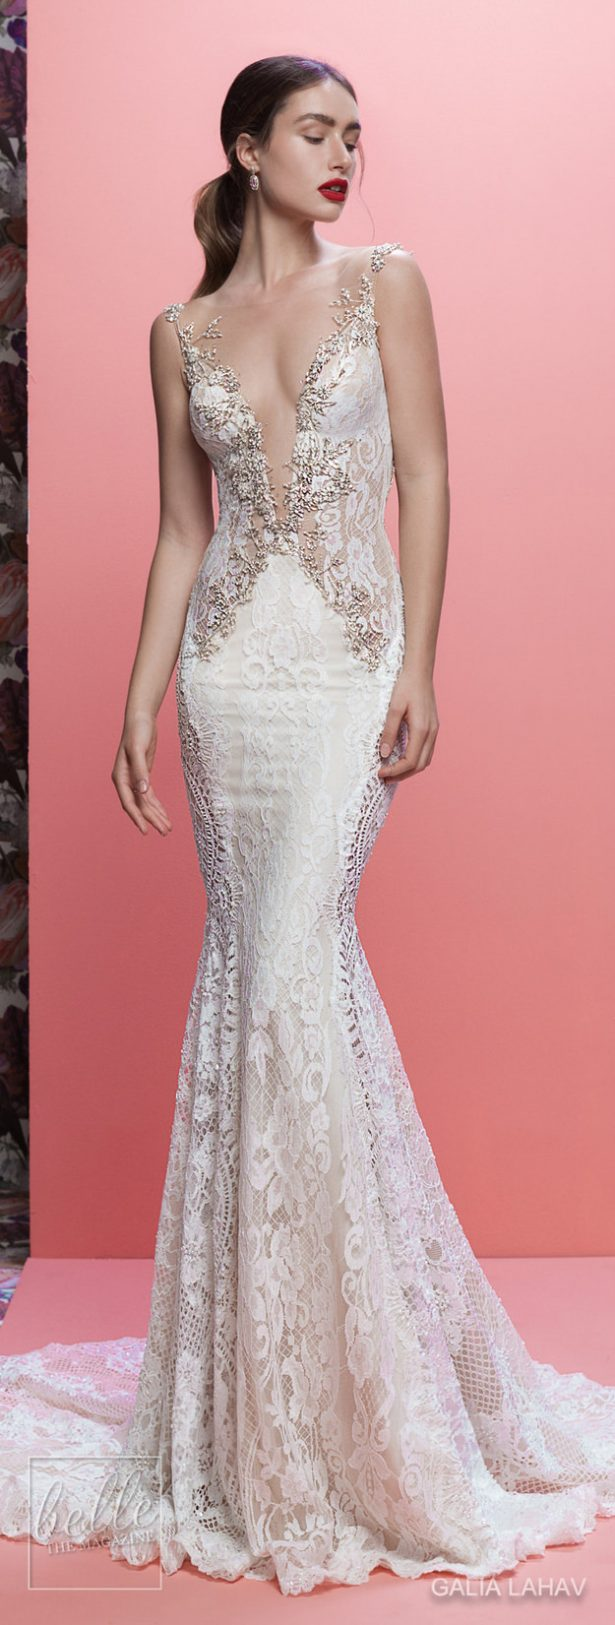 Wedding Dresses By Galia Lahav Couture Bridal Spring 2019 Collection- Queen of Hearts - Luca